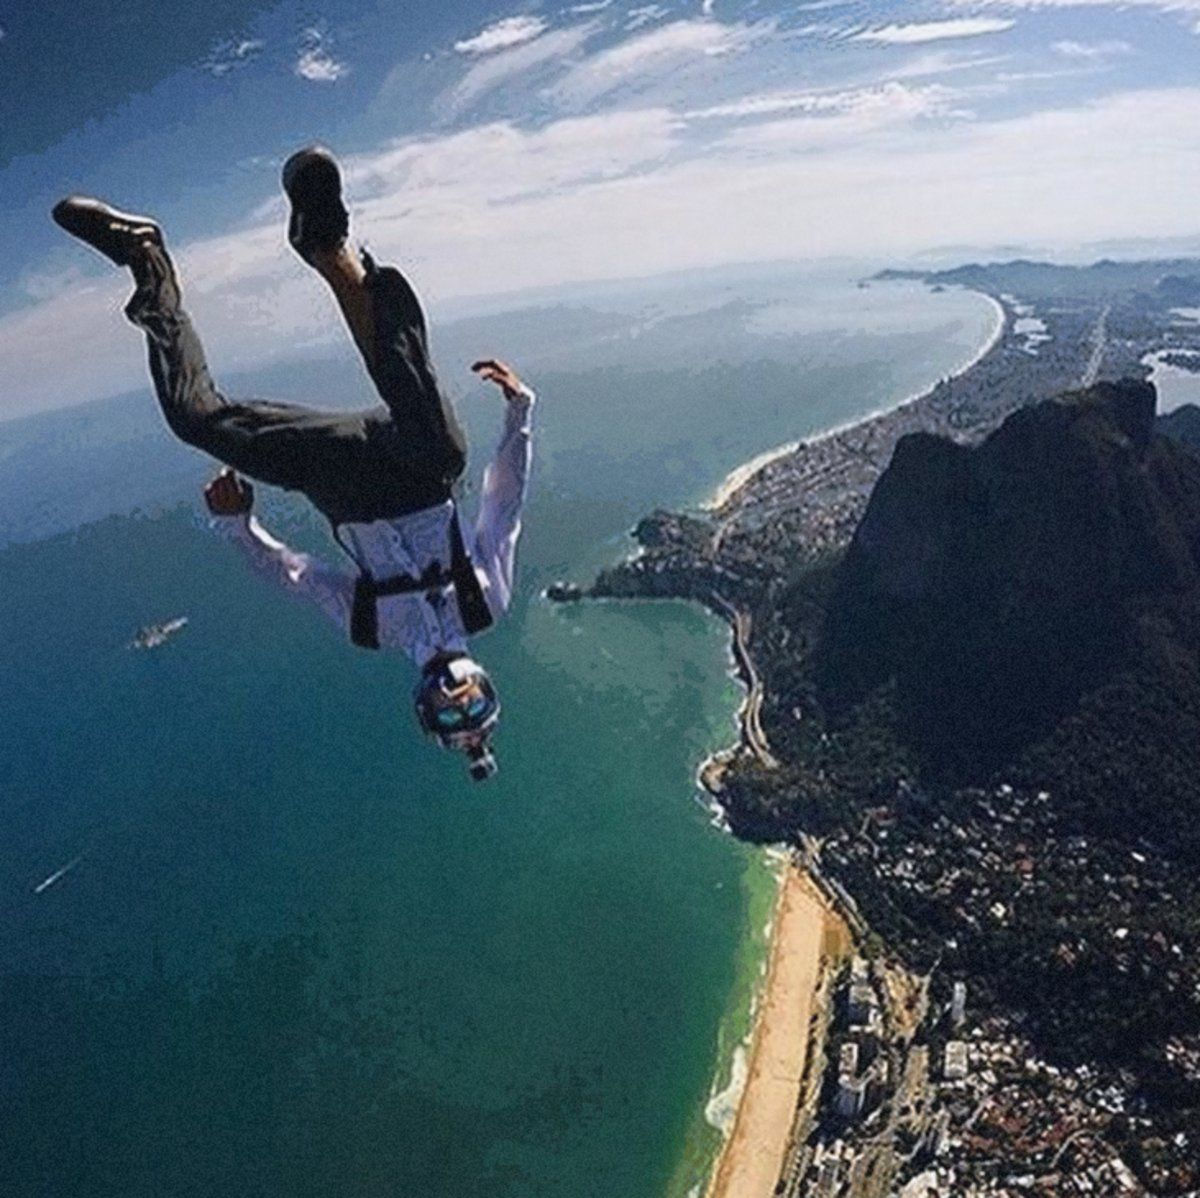 Here's How One Becomes a Skydiving World Champion https://t.co/vr9DFN7H4l https://t.co/dMlwiG0f4M